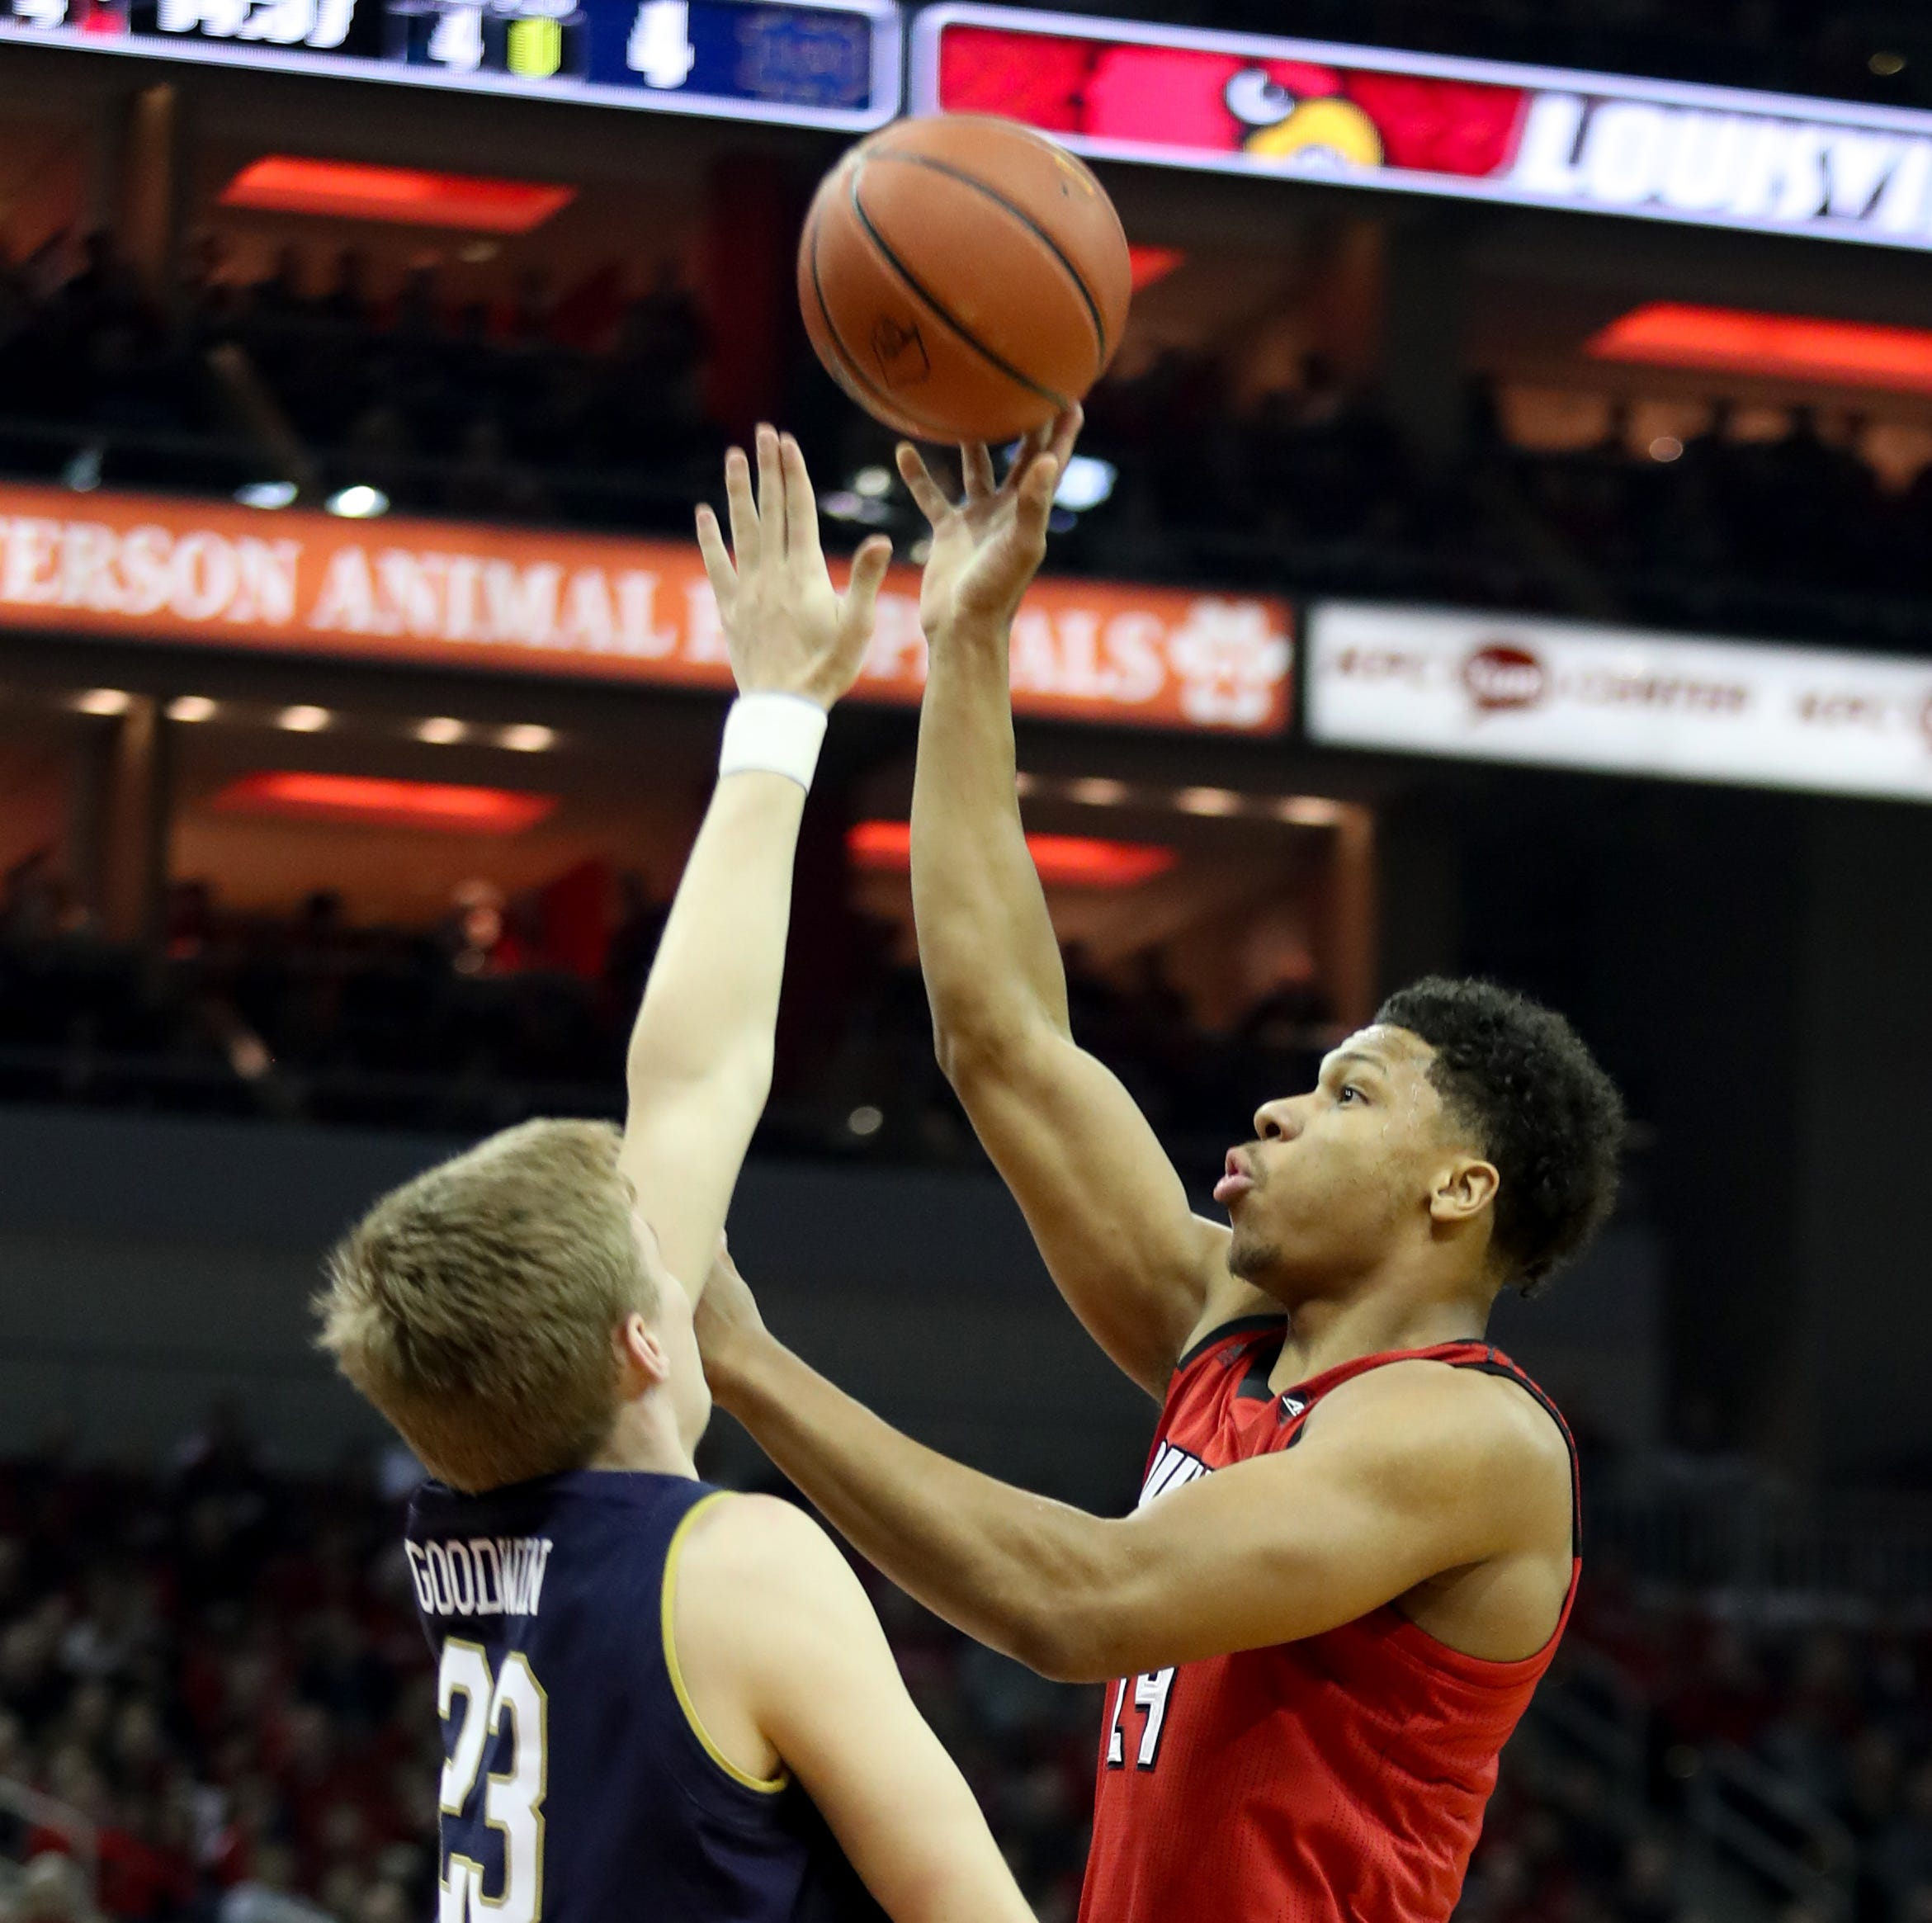 Louisville gets physical to recapture 'swagger' in win over Notre Dame